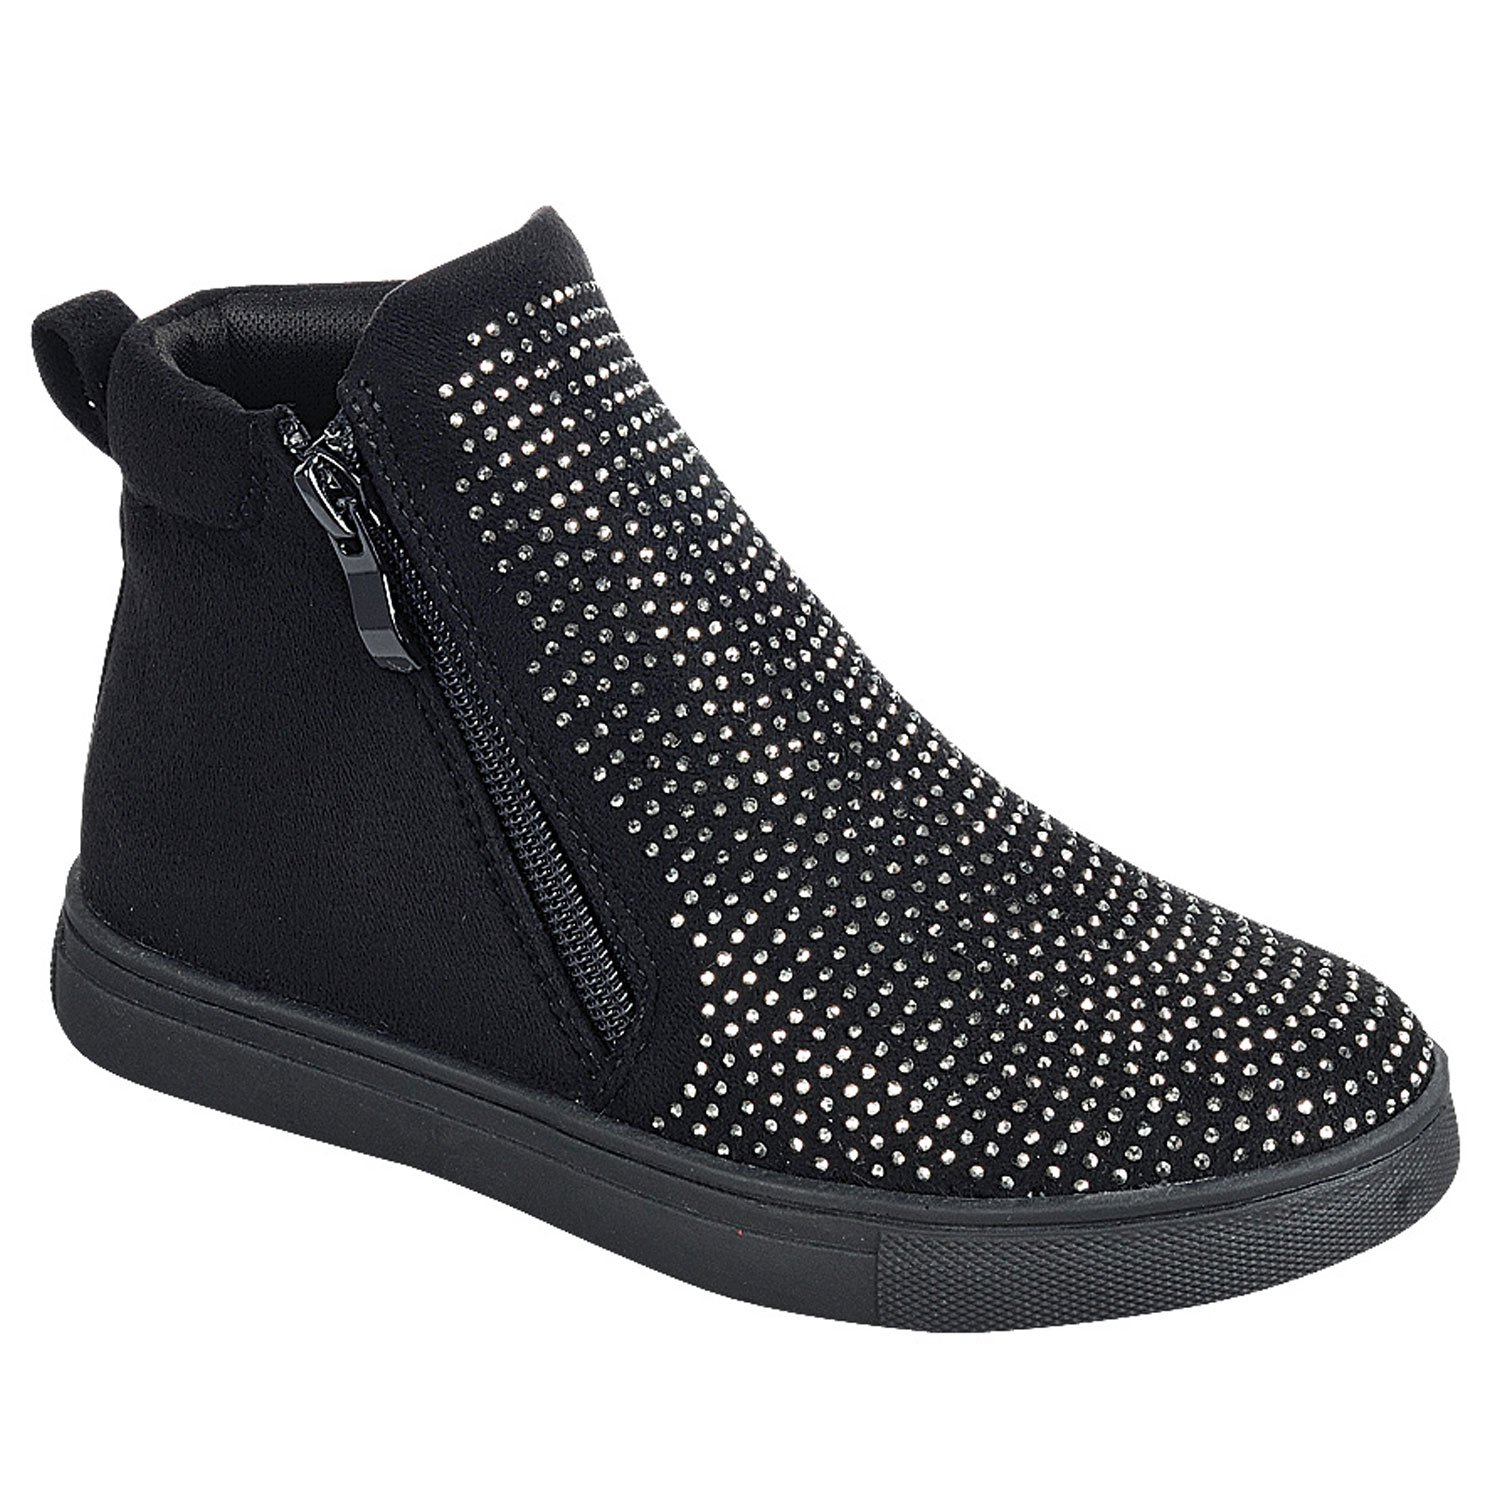 Top Black High Top No Heel Shoe Anti Skid Round Toe Faux Leather Zipper Slipon Bling Modern Flashy Flat Ankle Bootie Back to School Uniform Canvas Sneakers for Girls Youth Kid (Size 4, Black) by TravelNut (Image #1)